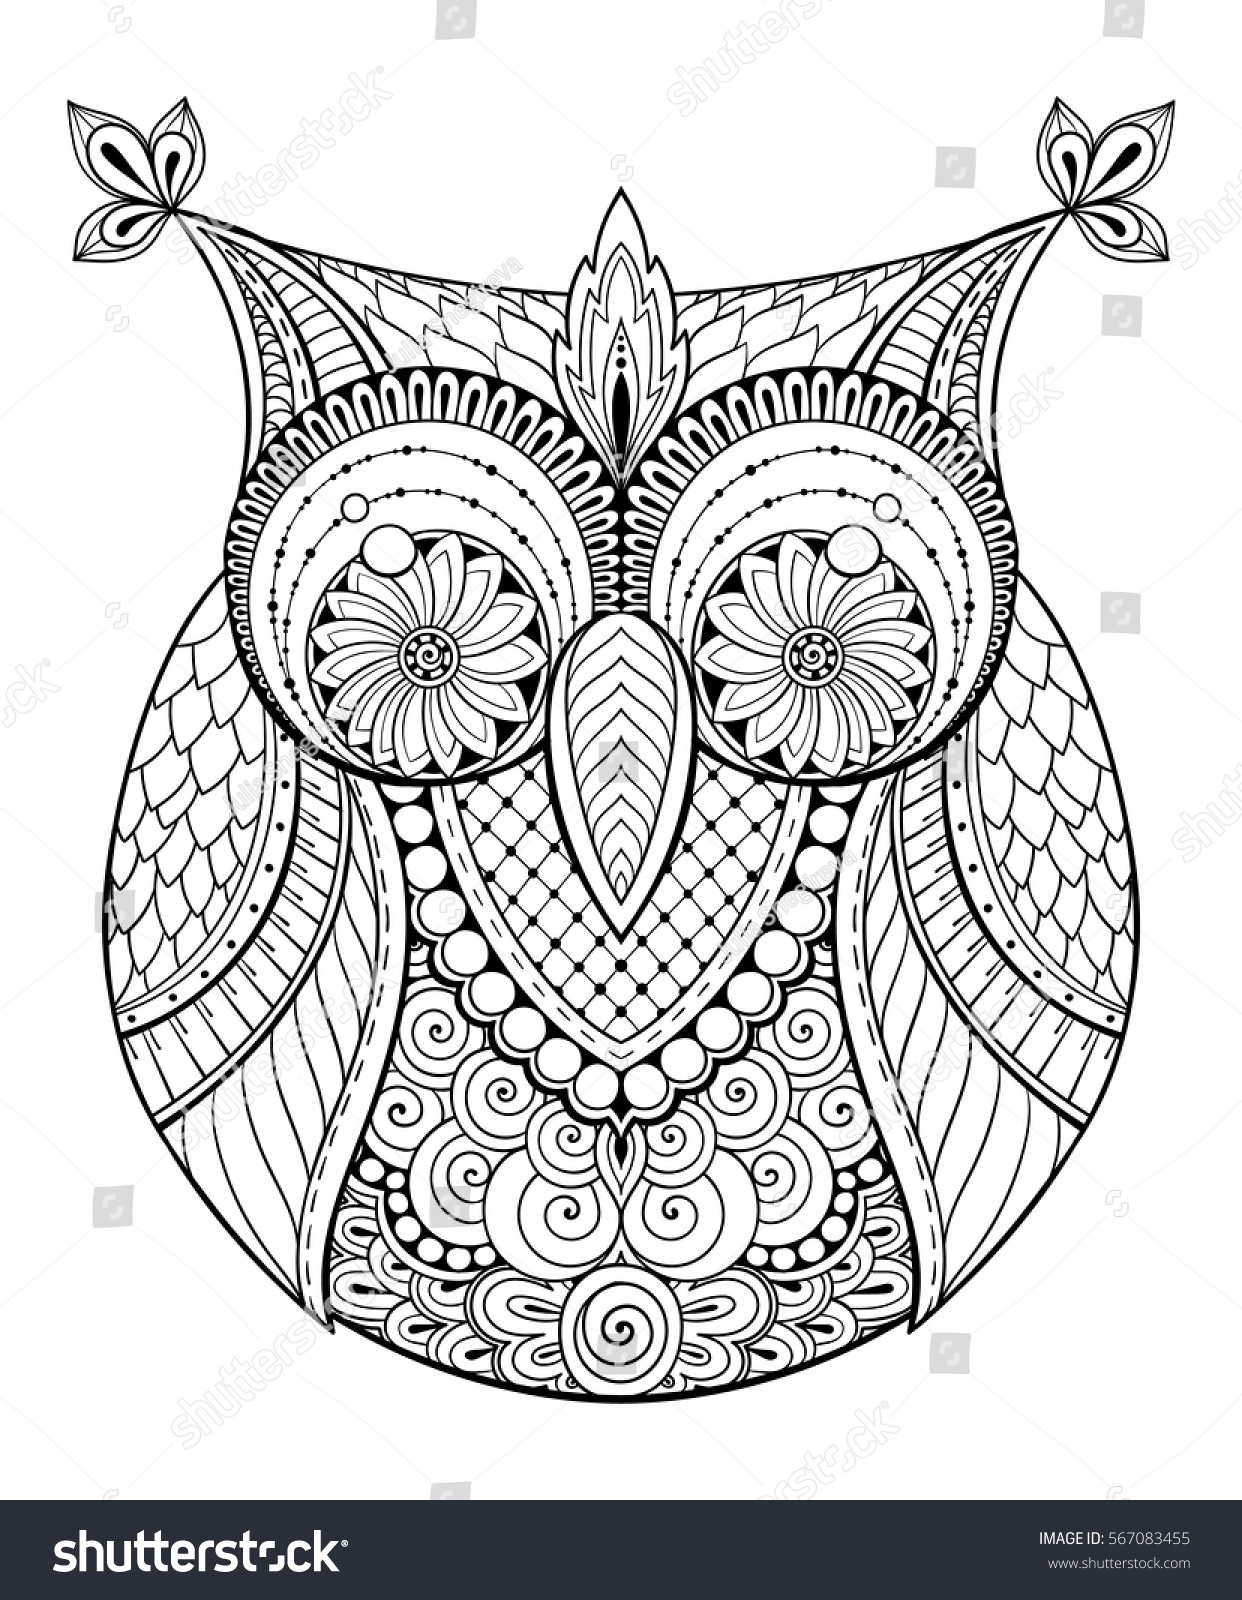 aztec owl coloring pages - photo#14